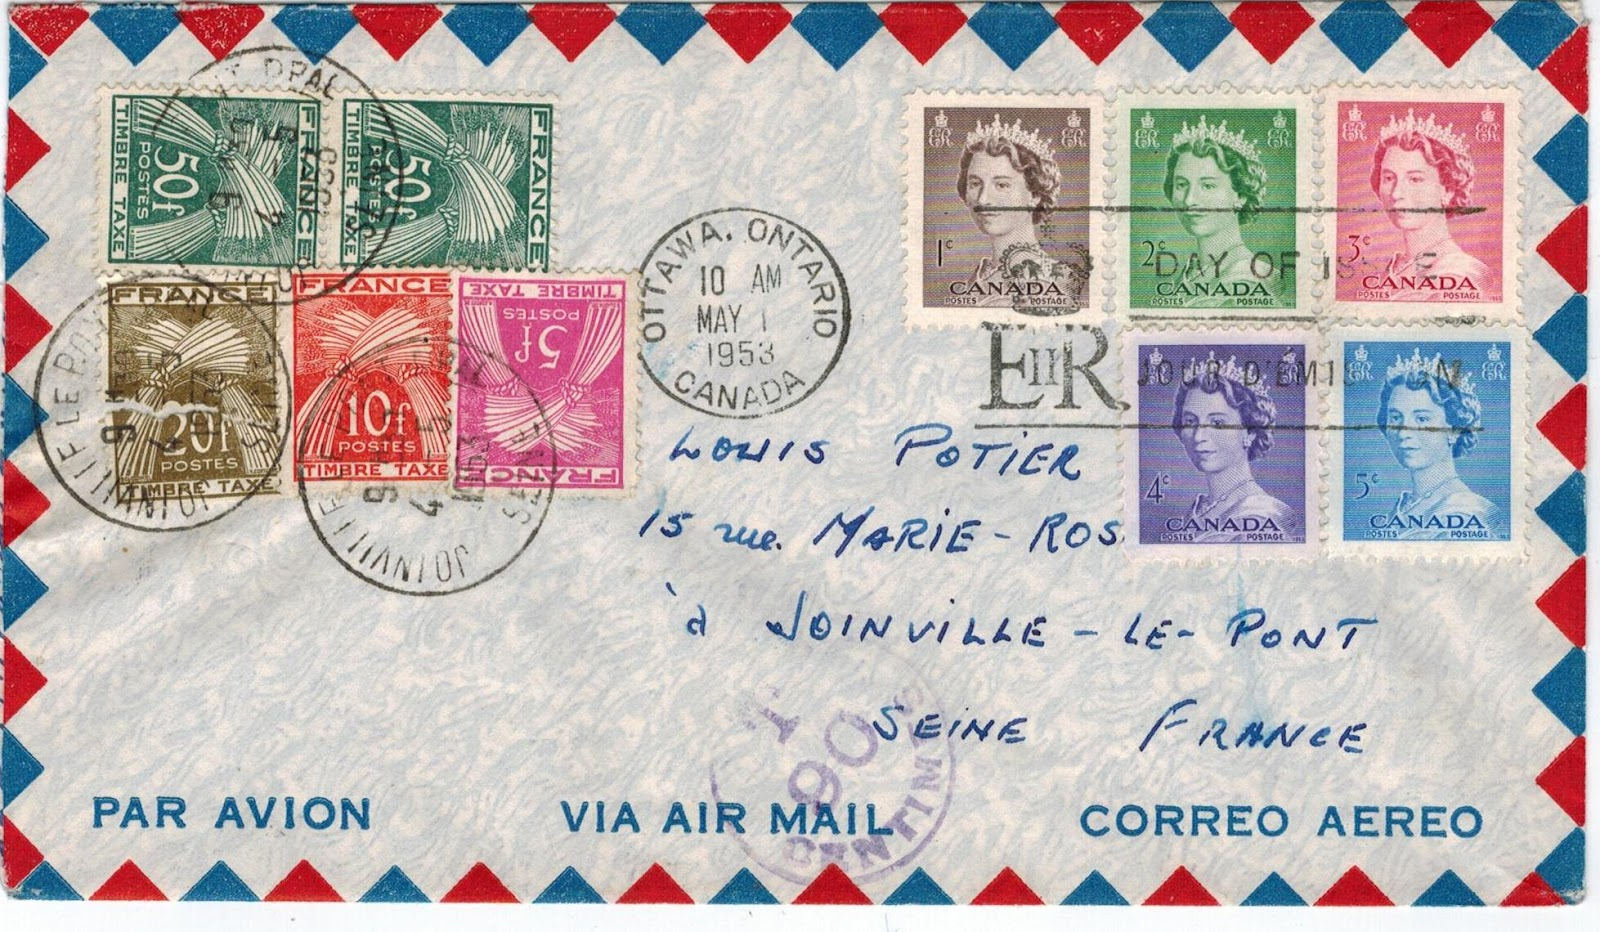 Postal History Corner 1953 A Colourful Karsh Cover